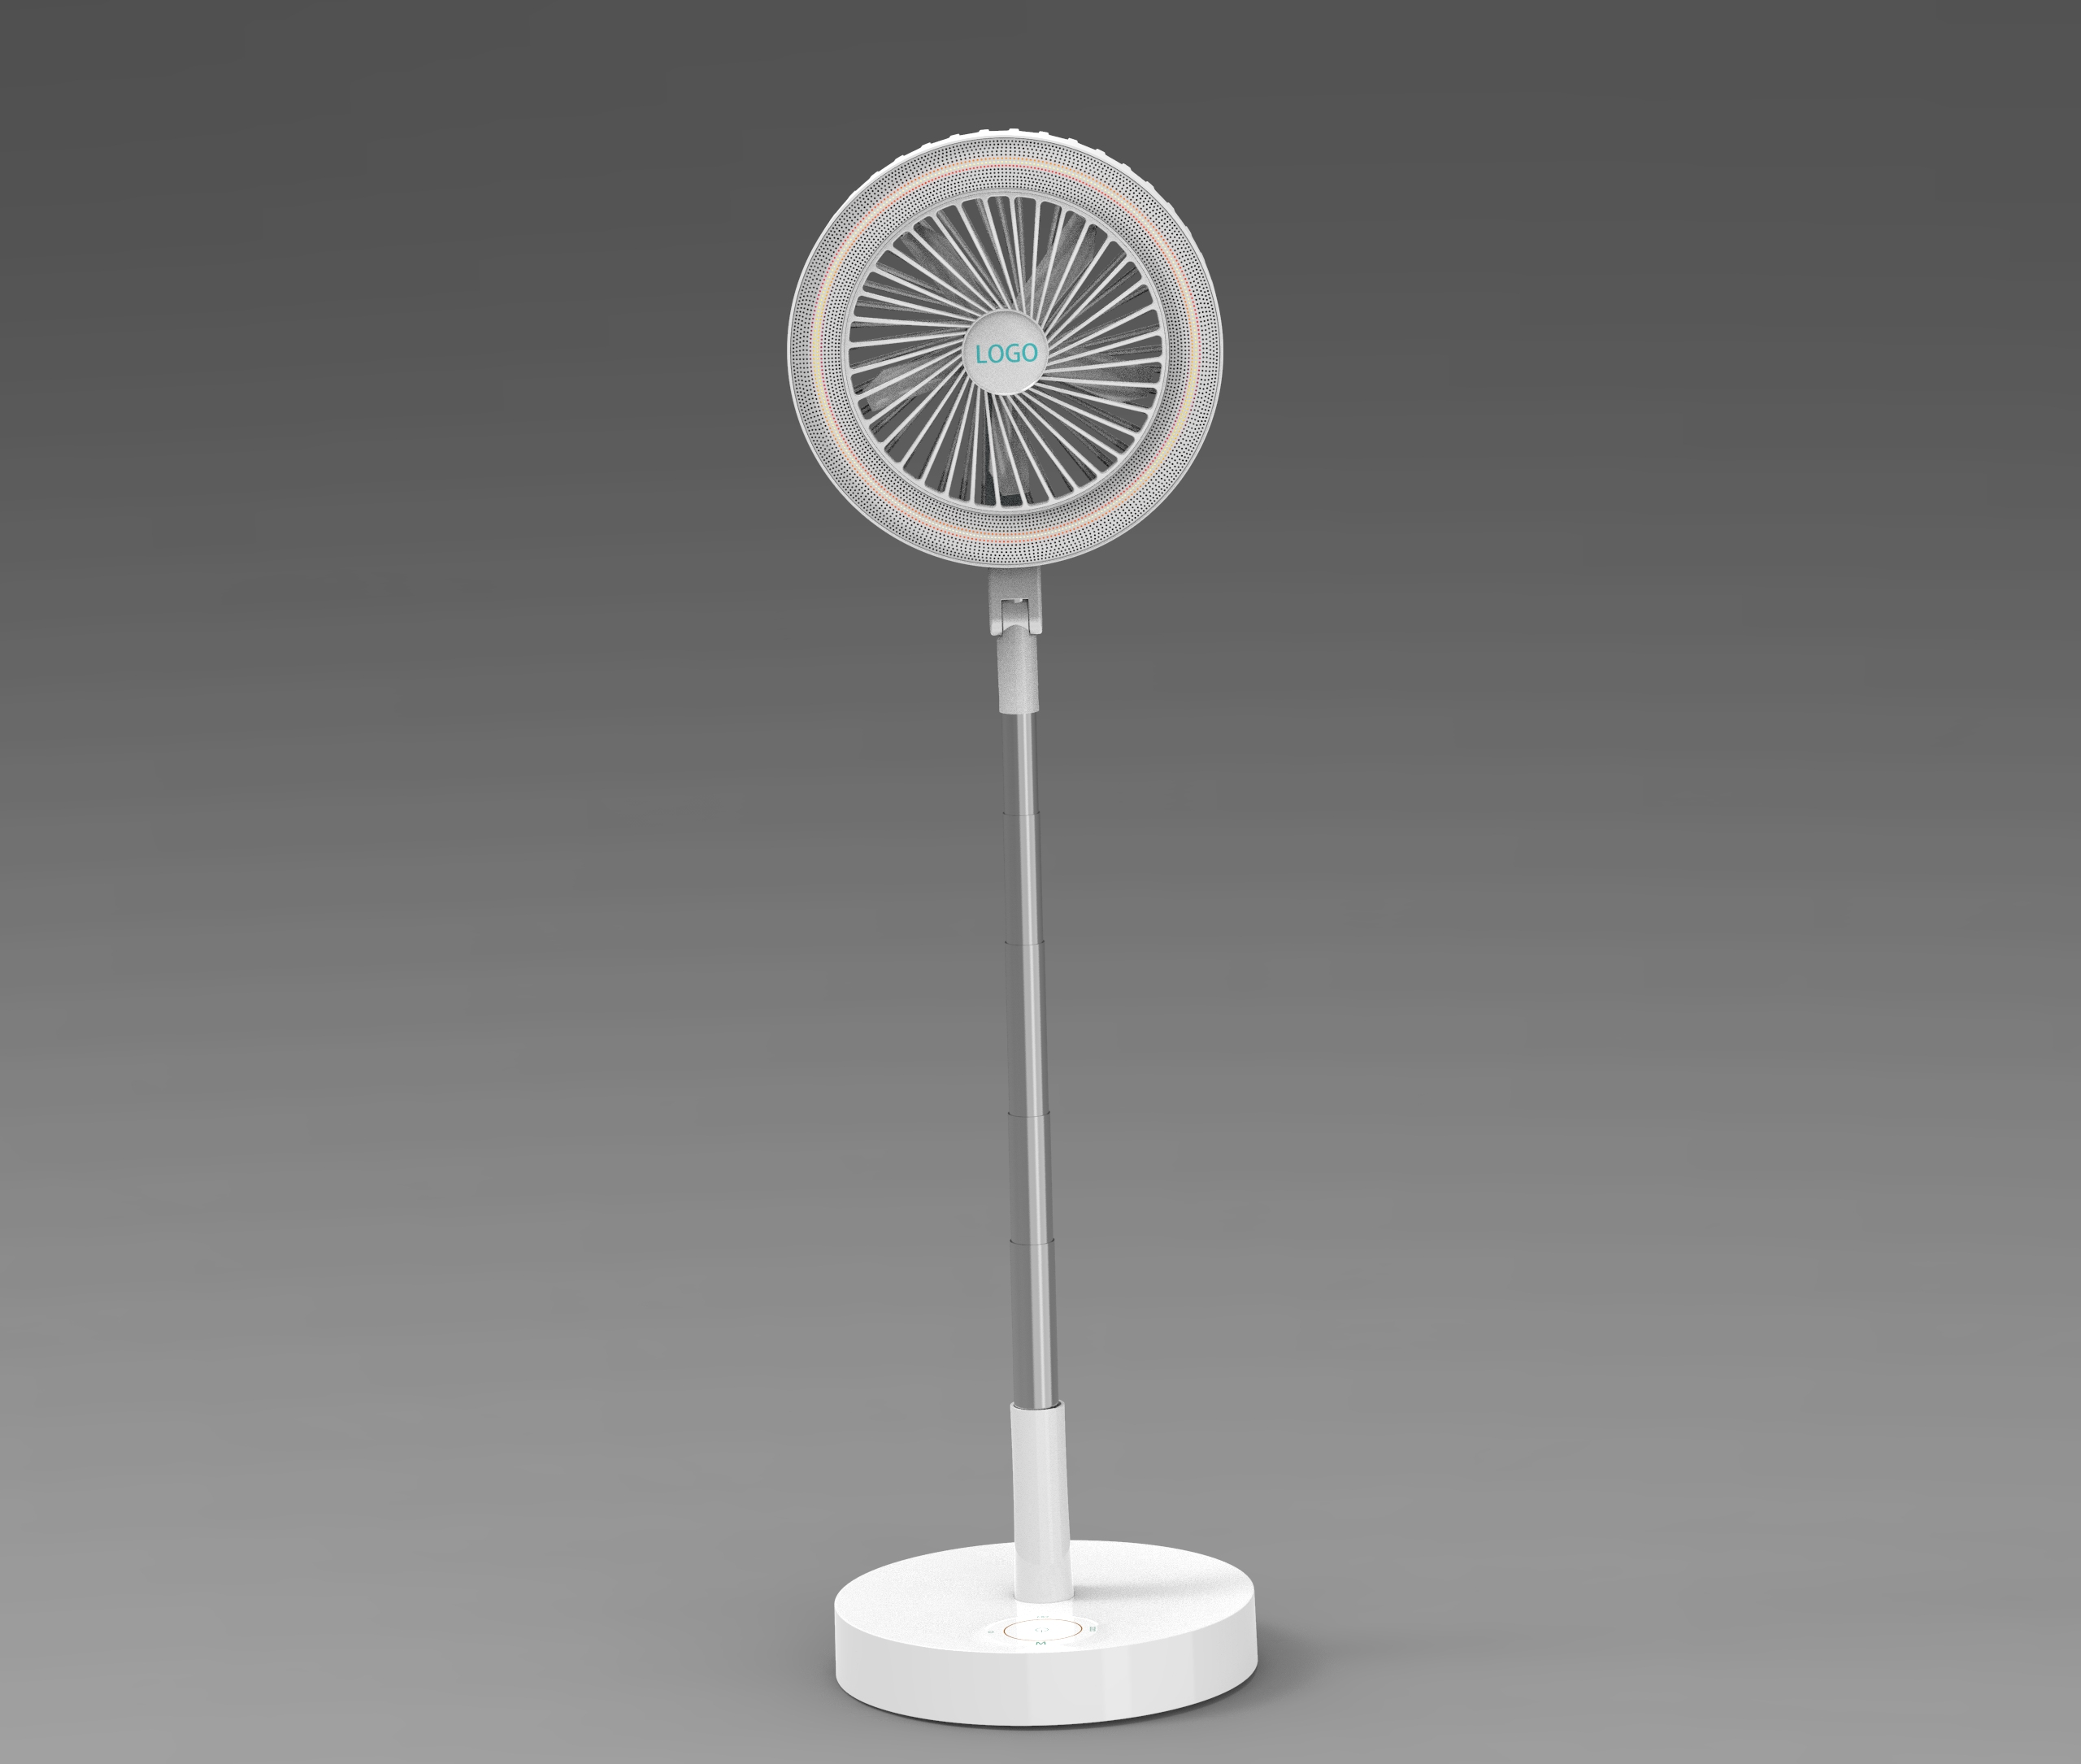 Hot new Fan Lovely Cooler Portable Super Mini Fan with LED Lights